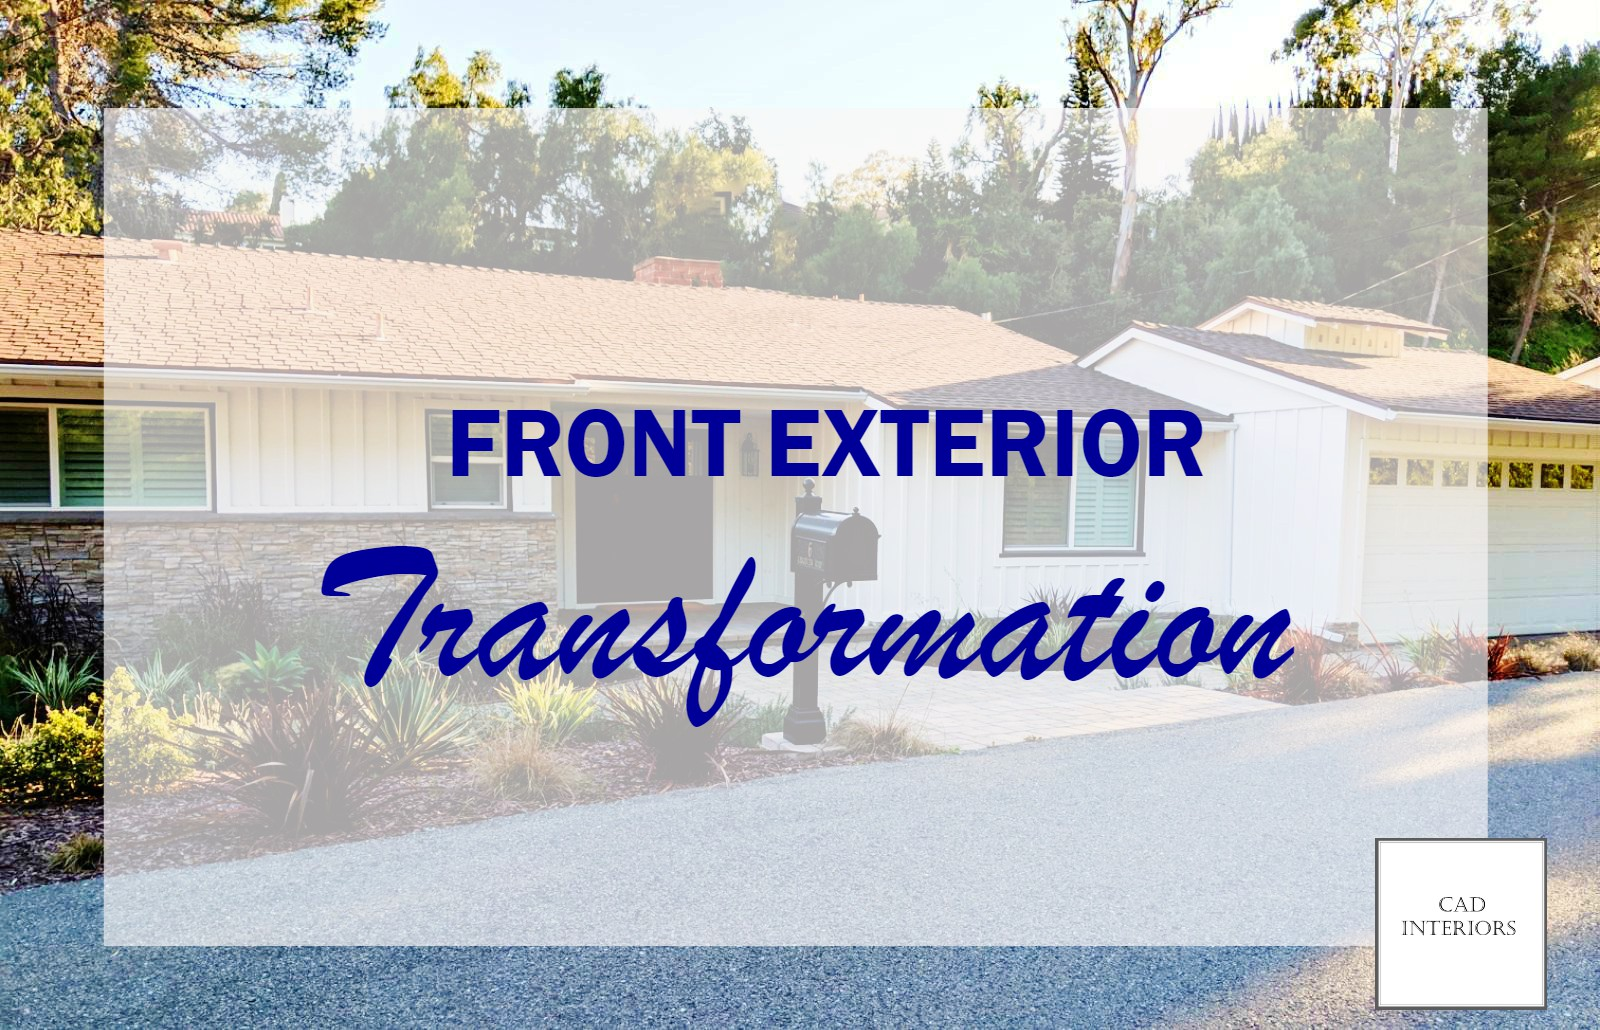 home renovation exterior improvement remodel mid-century traditional craftsman ranch house white black door board and batten drought tolerant landscaping pea gravel pathway stone paver hardscape CAD Interiors home renovation curb appeal real estate